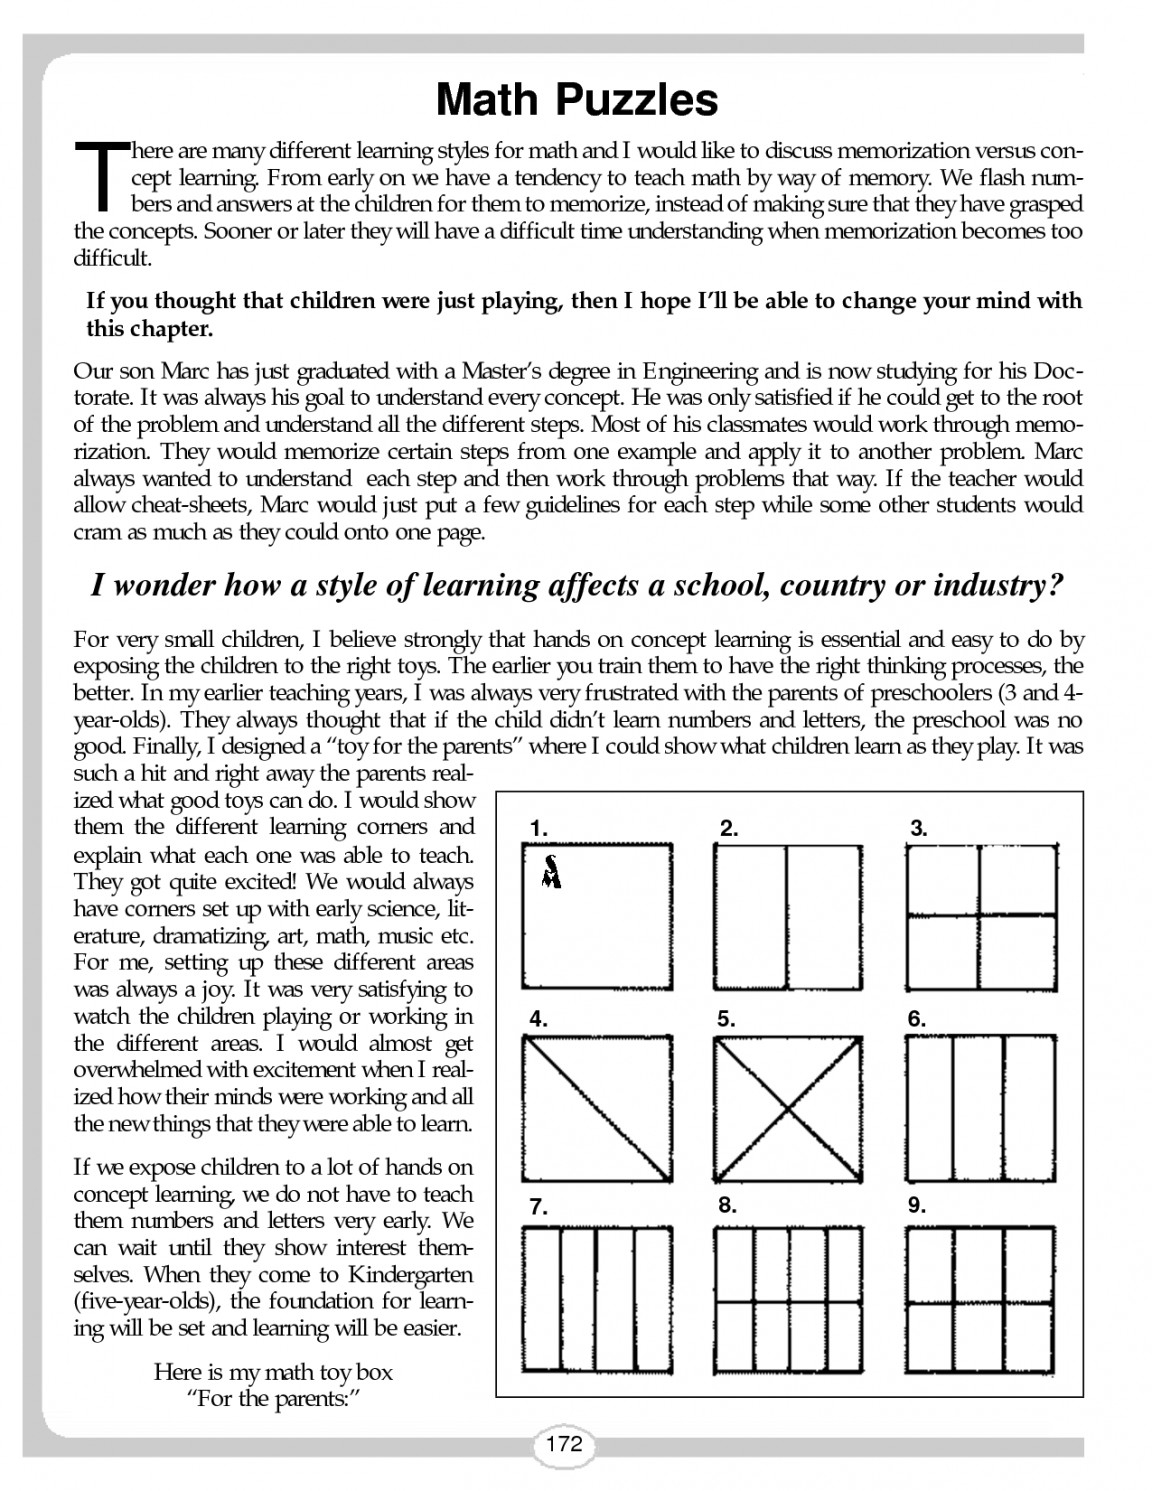 Printable Logic Puzzles For Middle School New Crossword Thanksgiving - Free Printable Logic Puzzles For Middle School